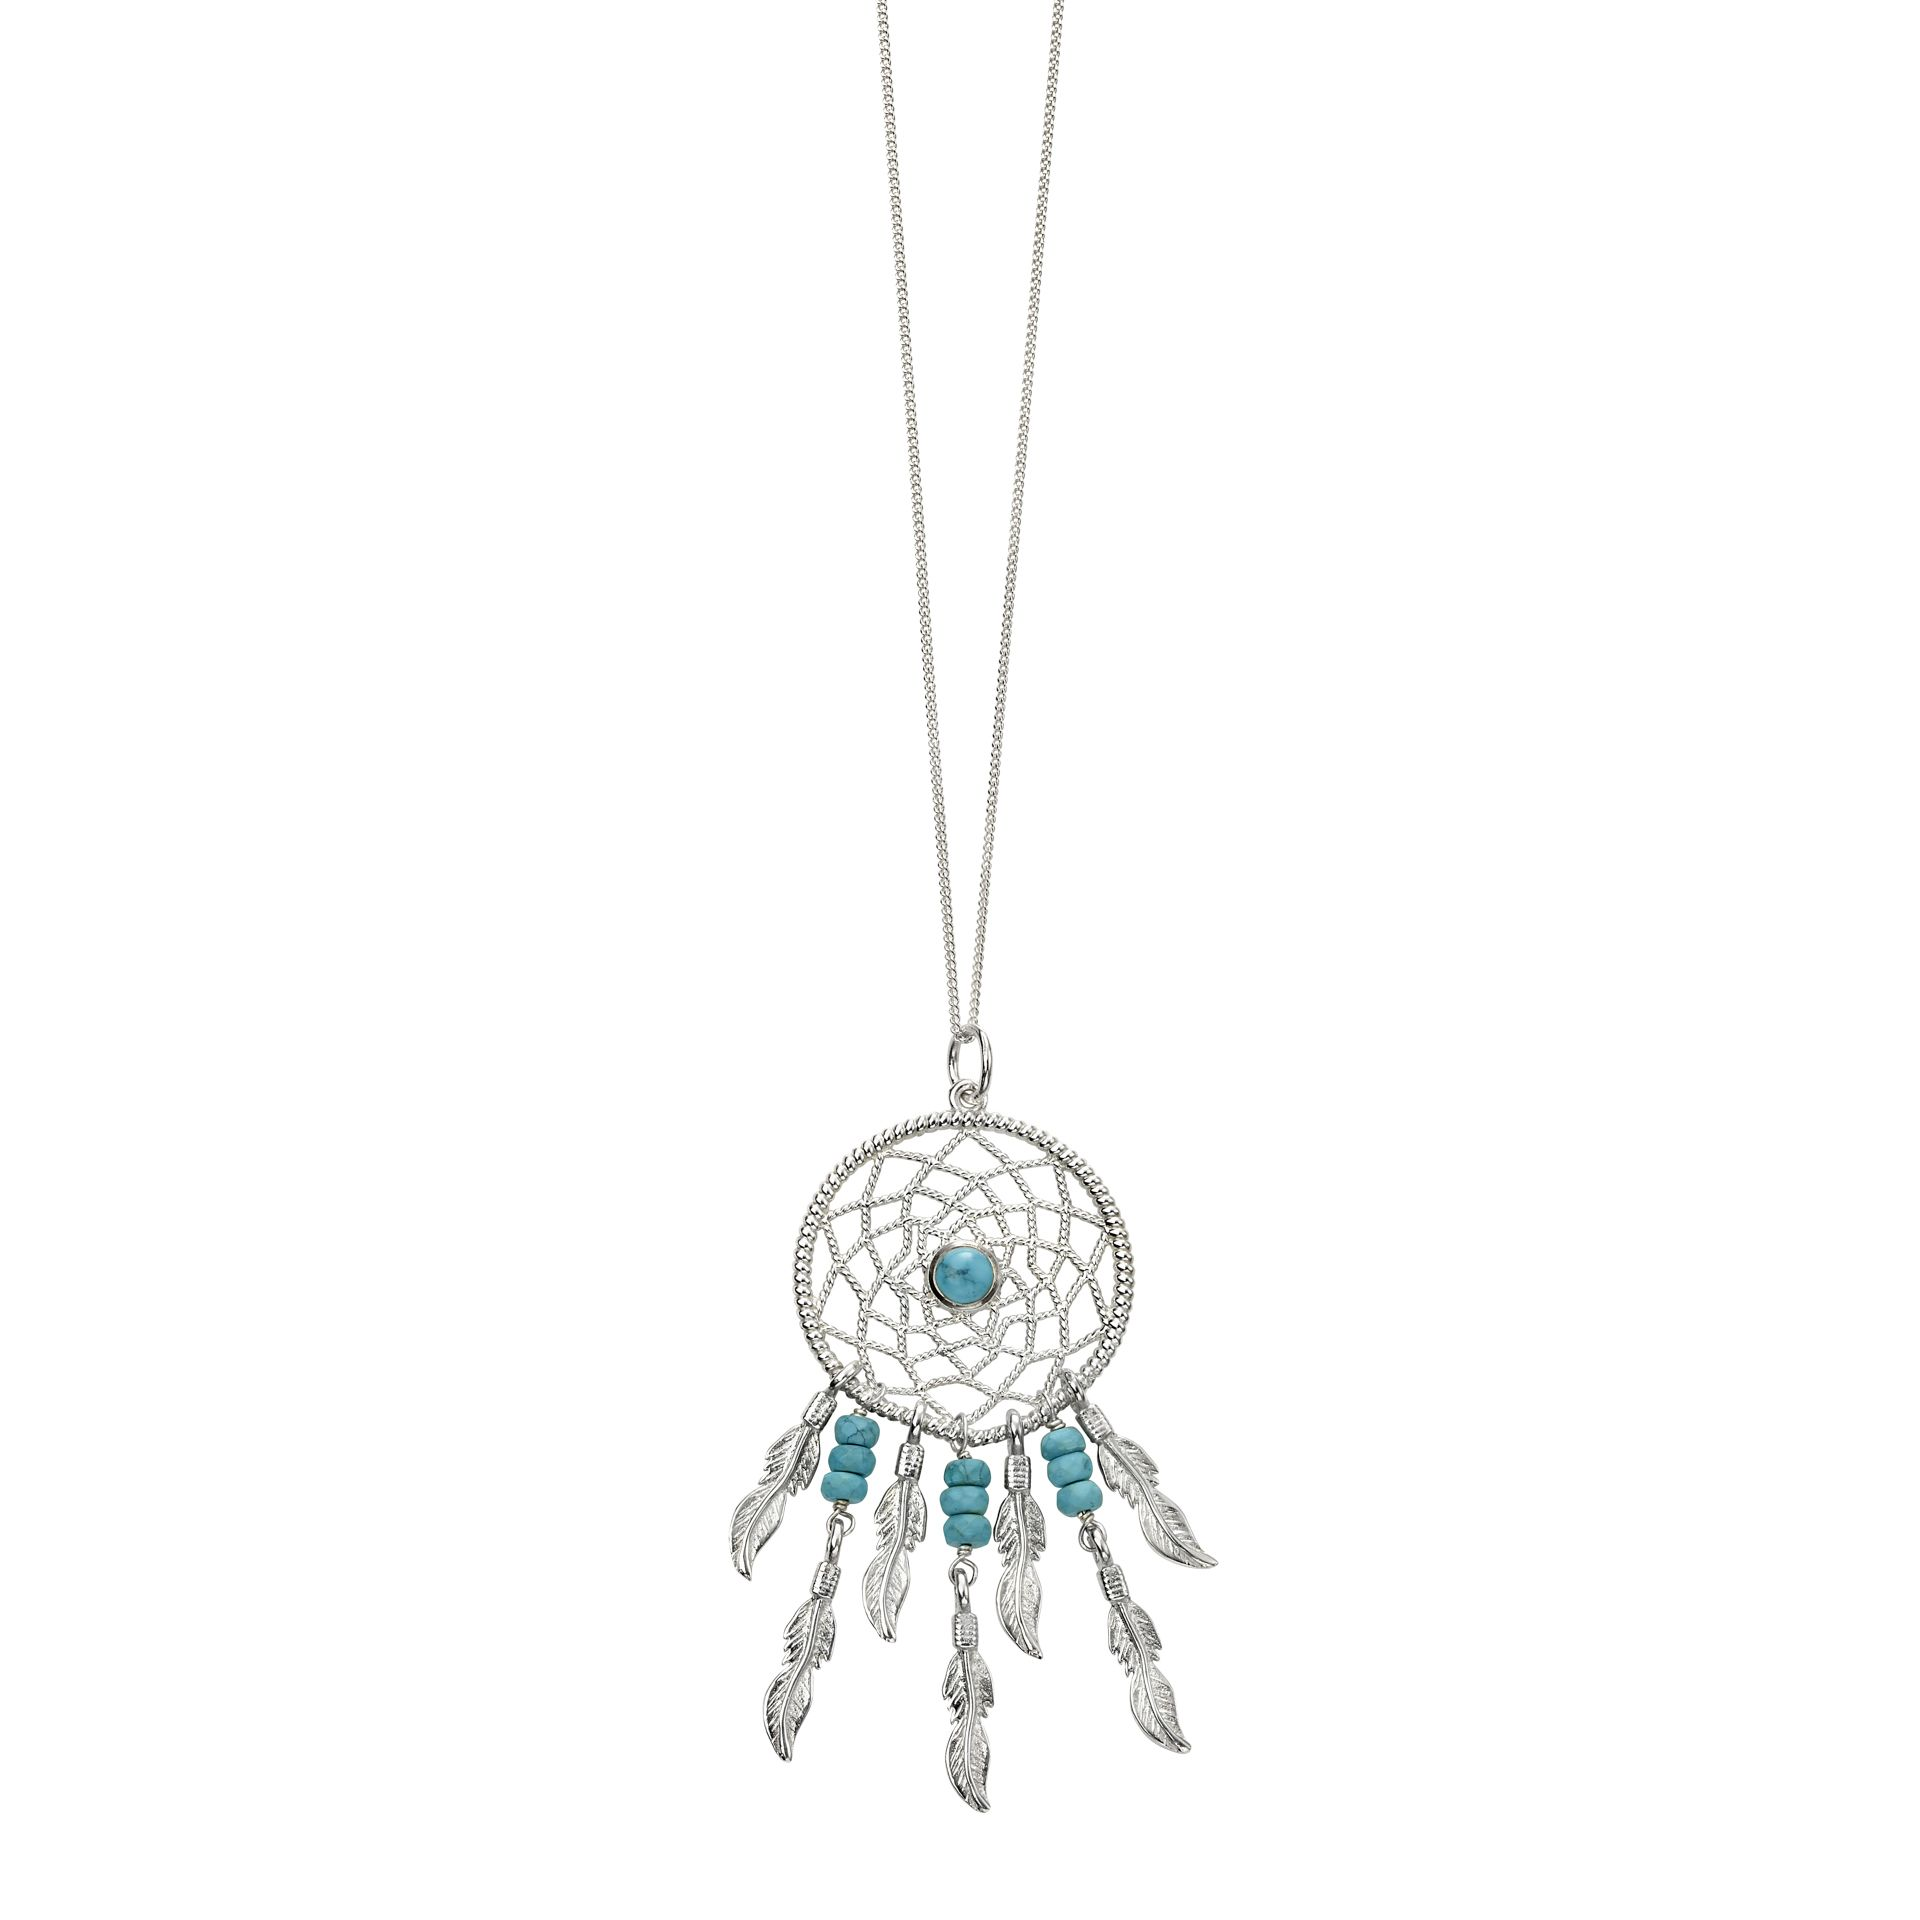 Beginnings Ladies' 925 Sterling Silver & Blue Magnesite Bead Dreamcatcher Pendant Necklace of Length 51-56m